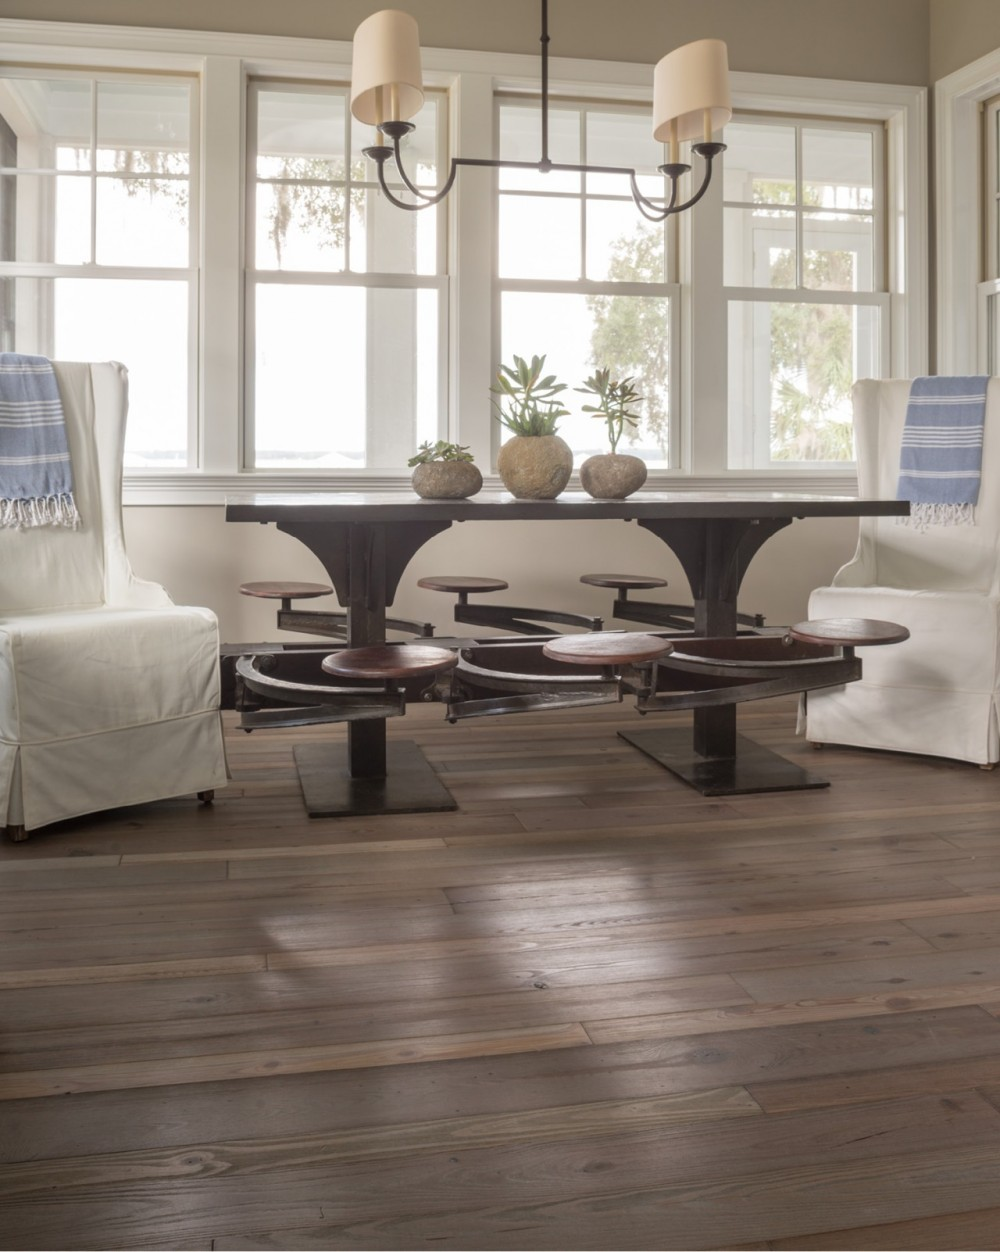 Multiple seating areas, including this wood-and-iron trestle table, accommodate intimate family dinners and big parties with equal success.